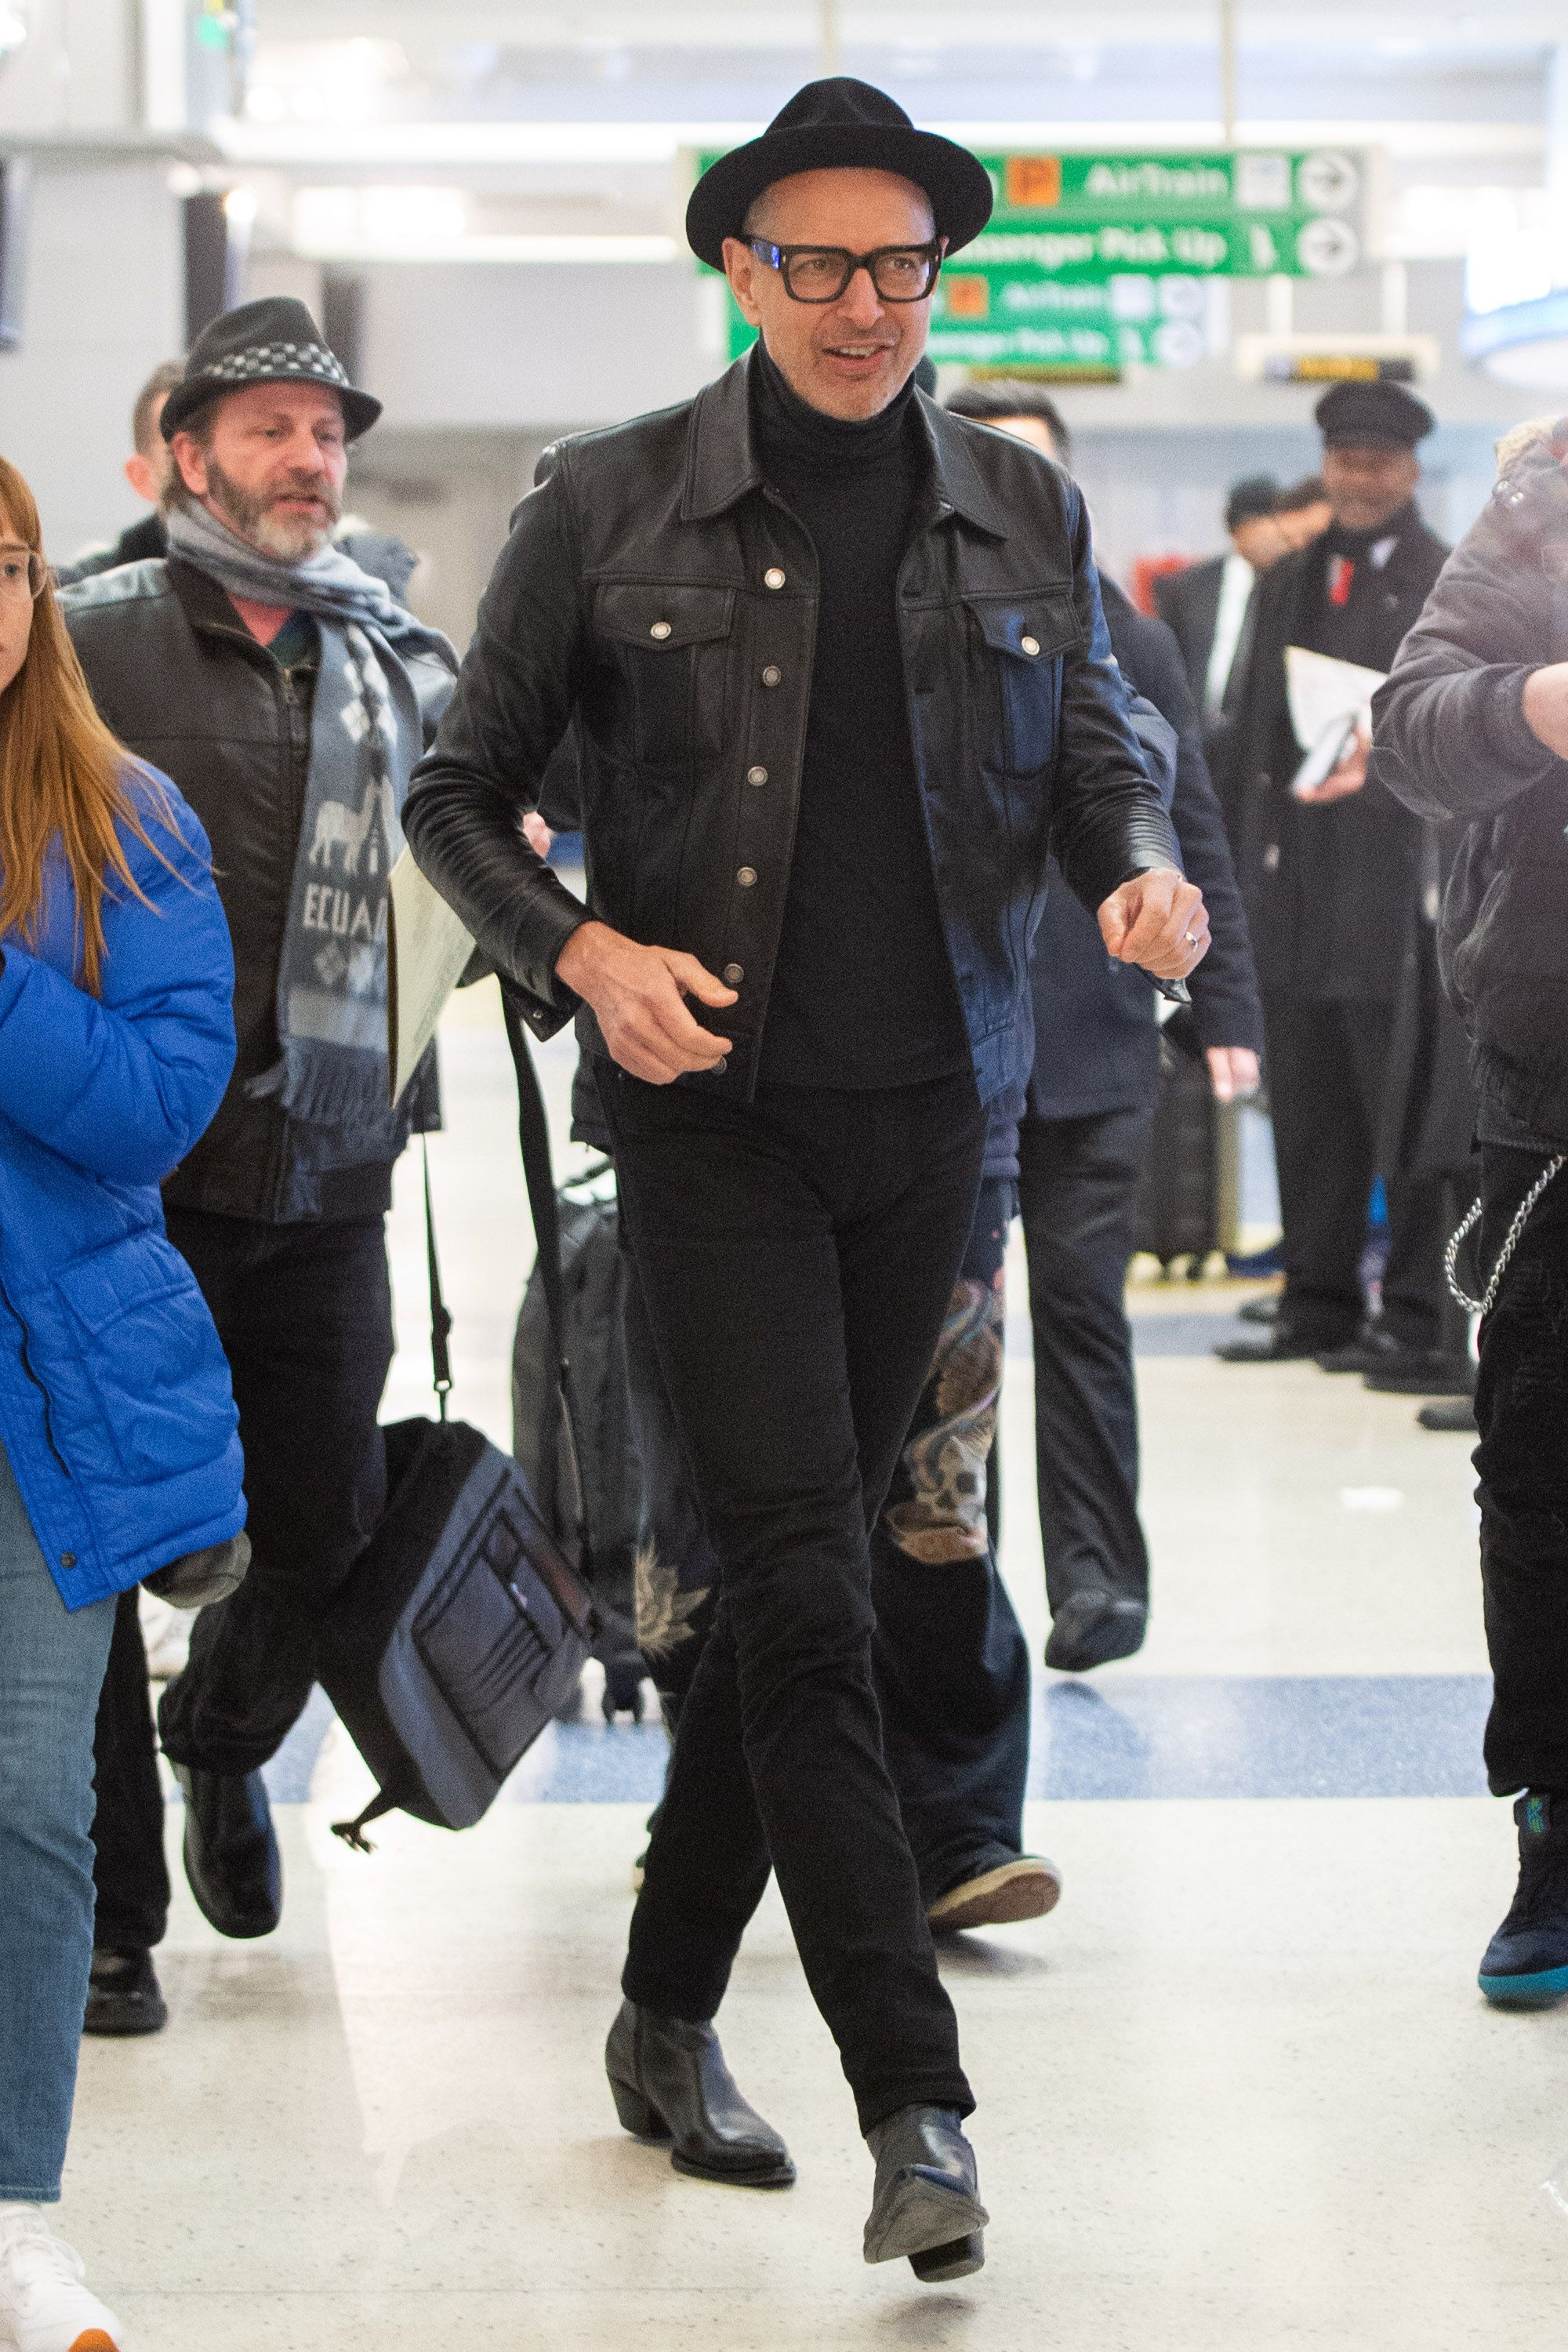 Jeff Goldblum Jeff Goldblum has been making some moves as a style icon as of late. This all-black look is a standout: a turtleneck, trucker, boots, and thick-framed glasses.